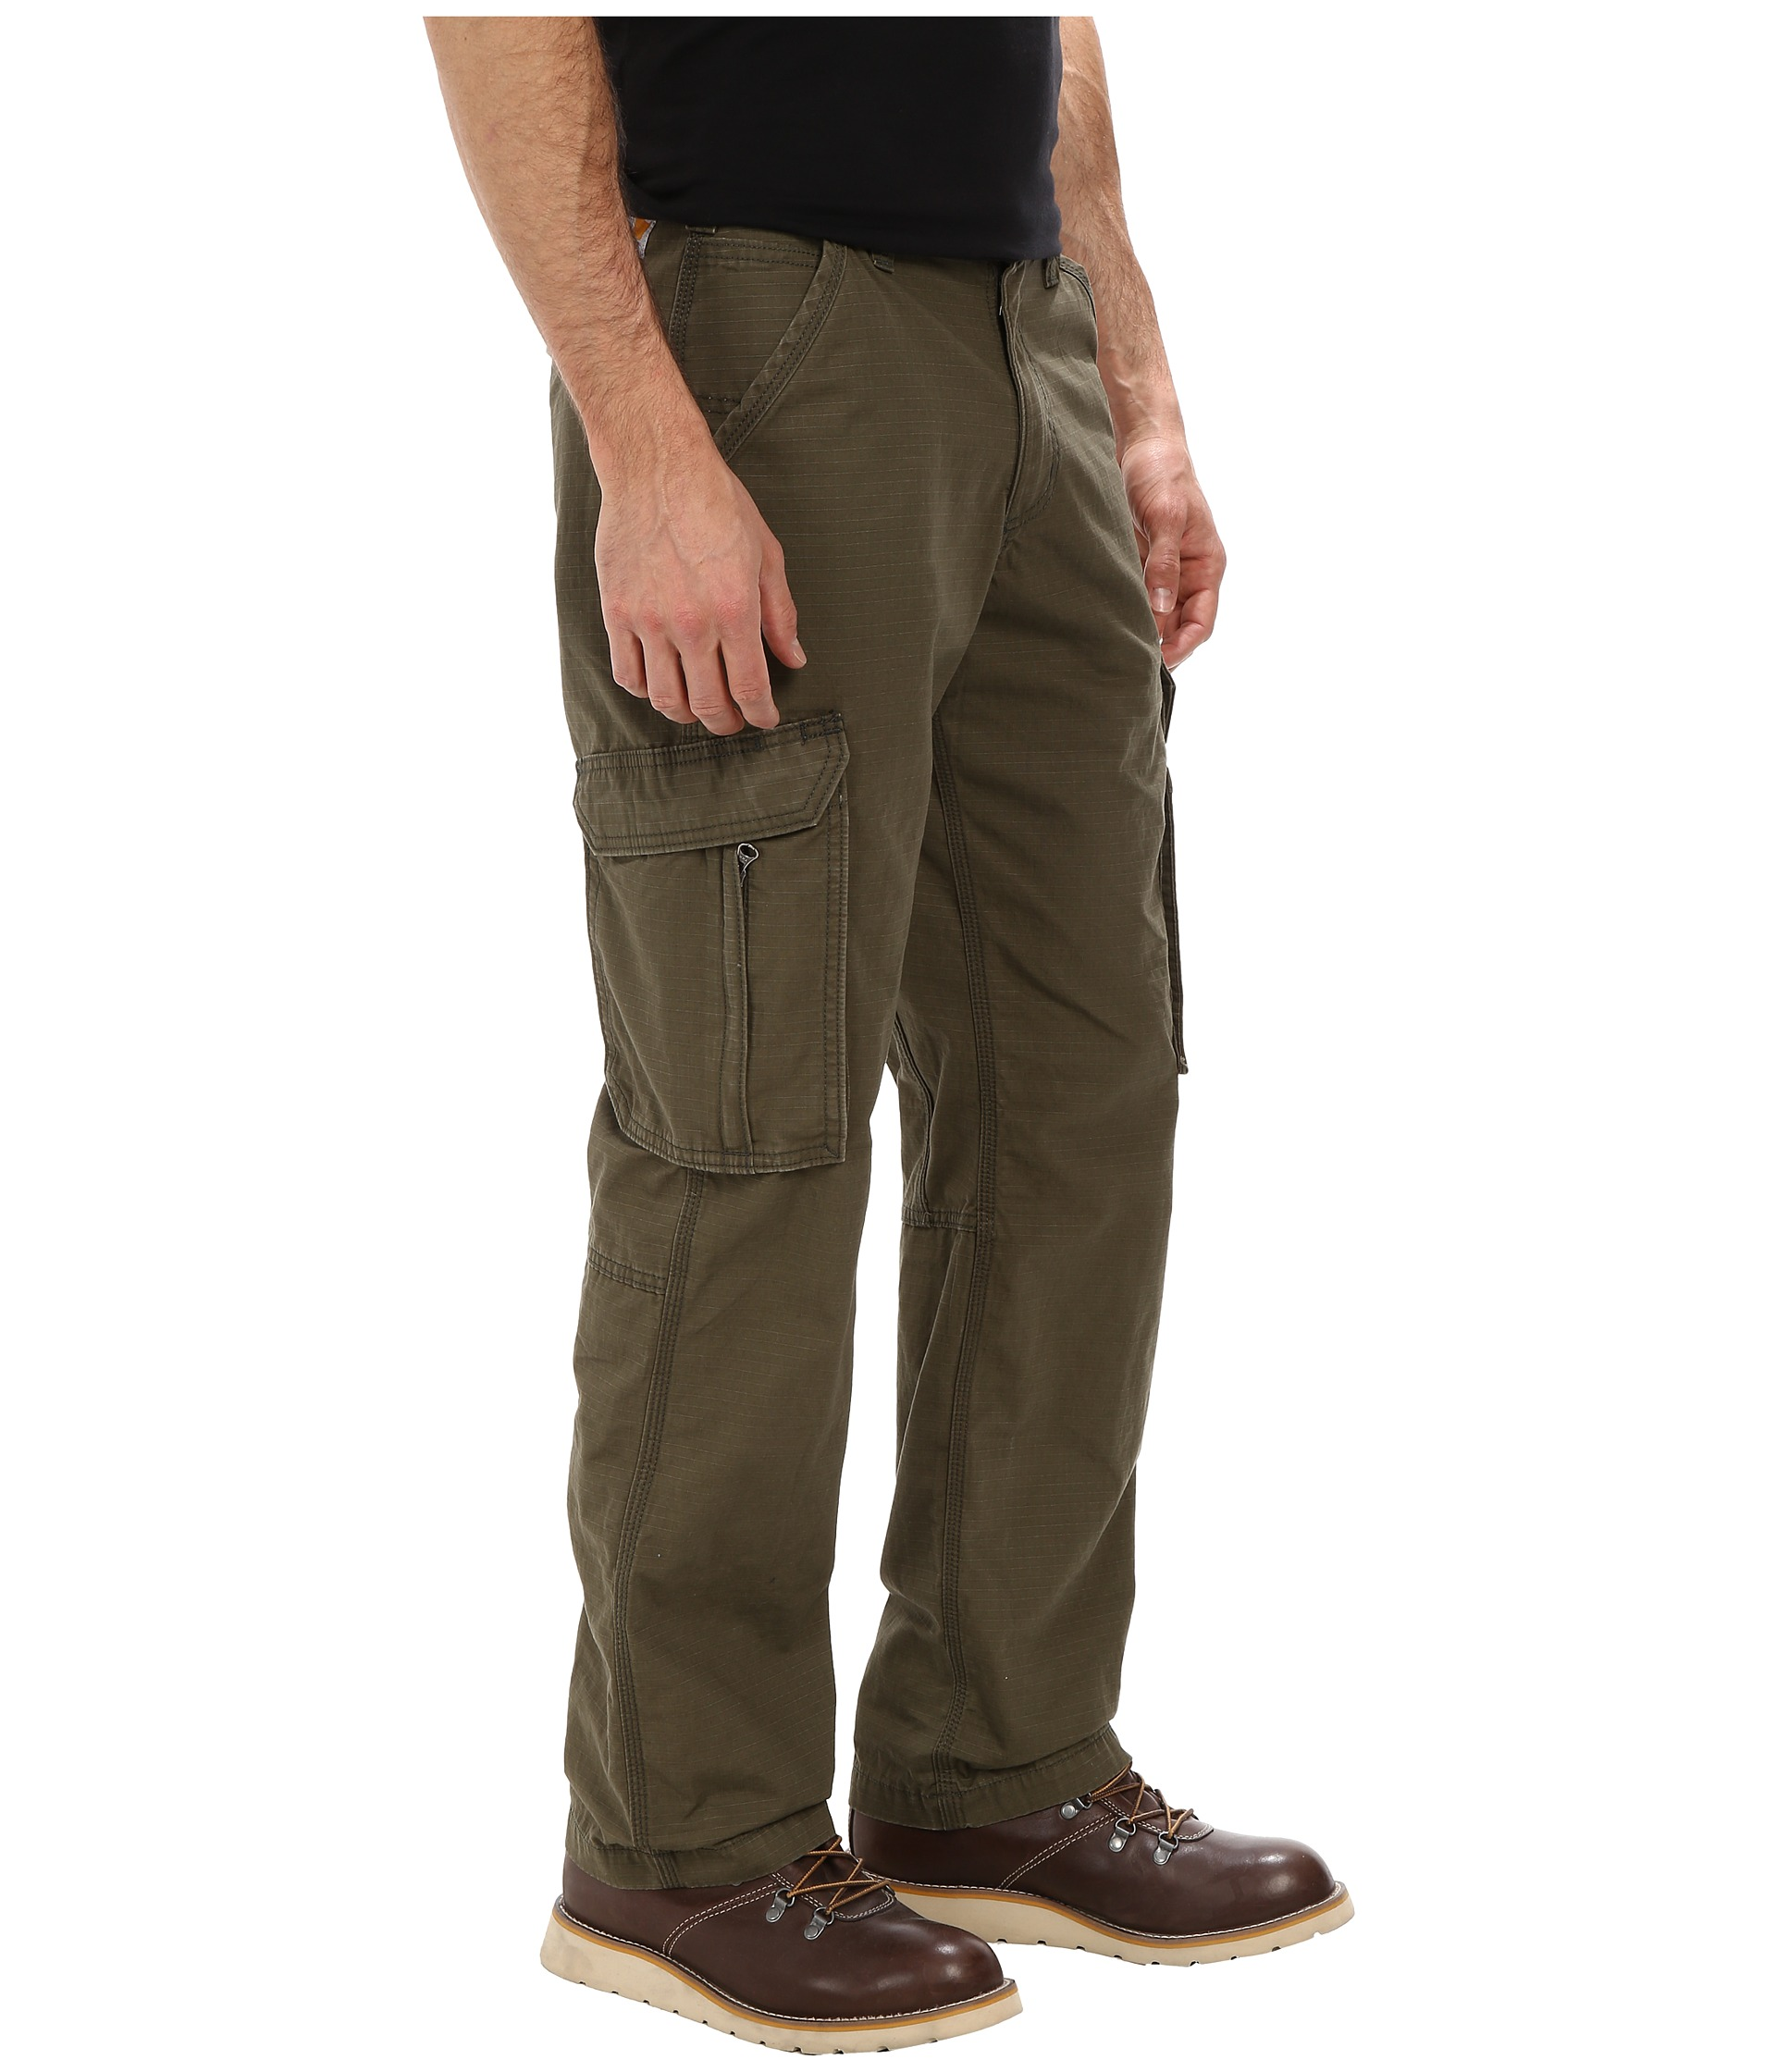 tappen men Lightweight, yet strong 7 oz, 100% cotton ripstop fabric is known for its durability fastdry technology wicks away sweat for comfort so you can stay.